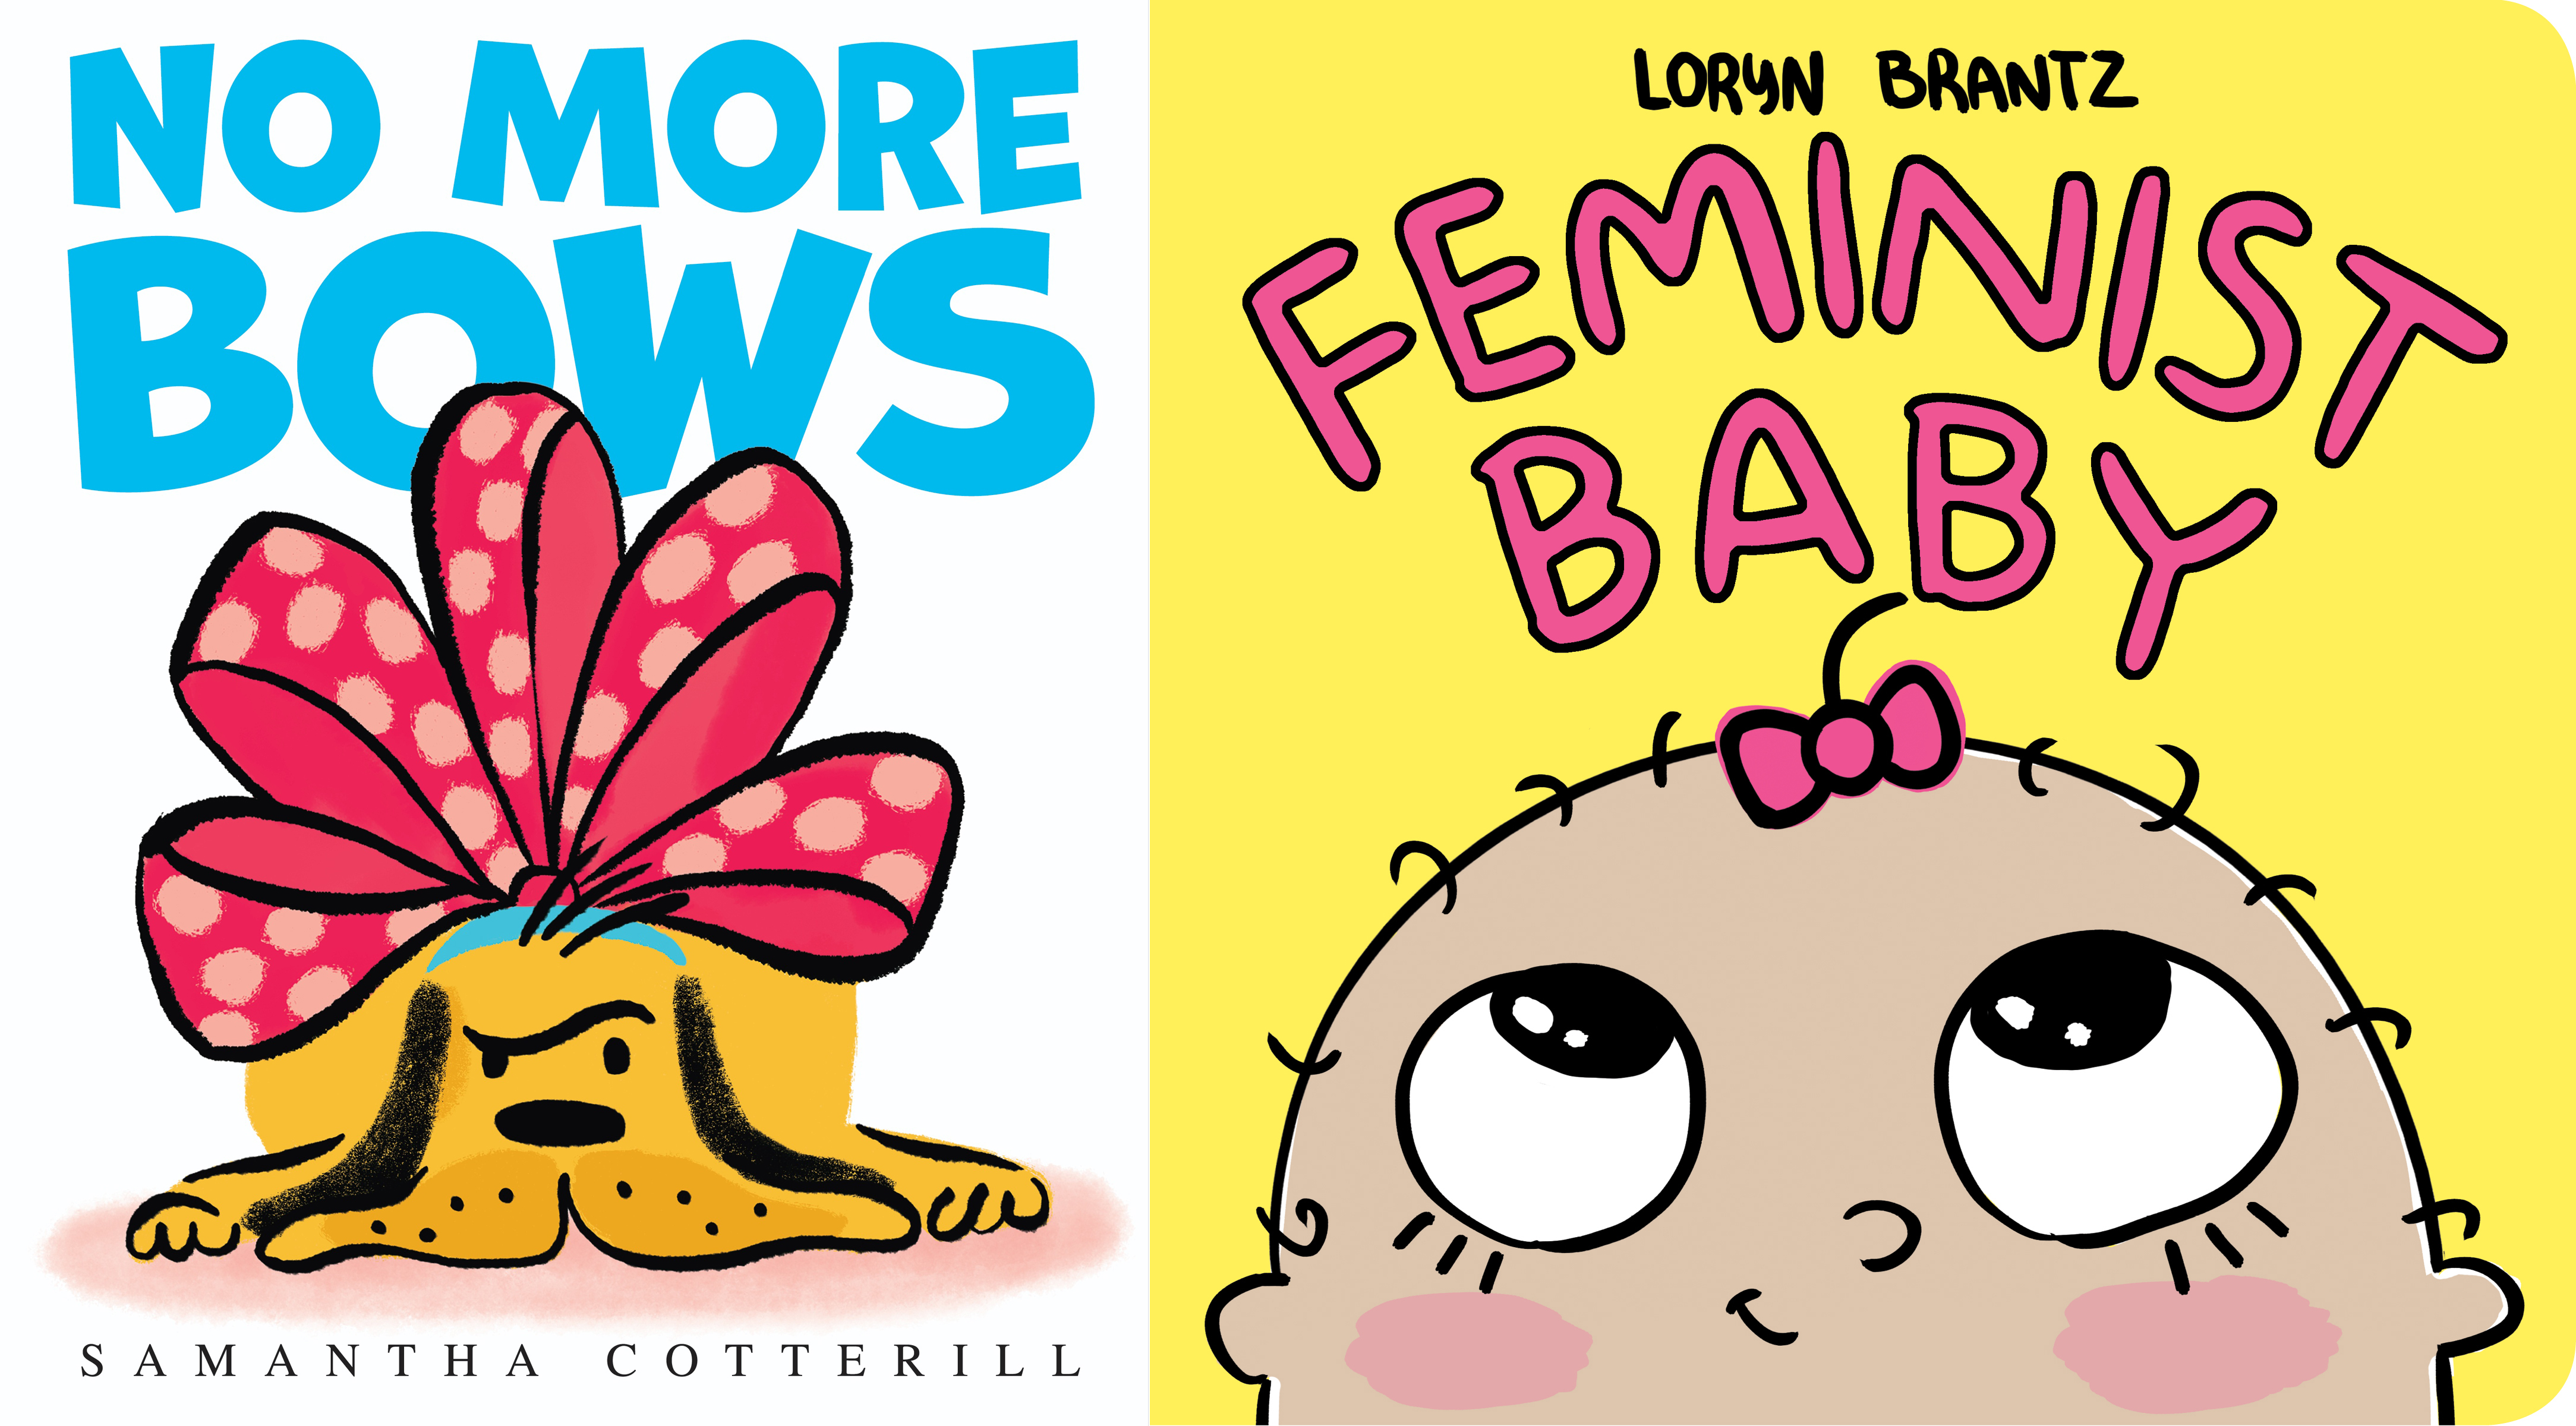 Joint Sunday Story Time with Samantha Cotterill (author & illustrator of No More Bows) and Loryn Brantz (author & illustrator of Feminist Baby)